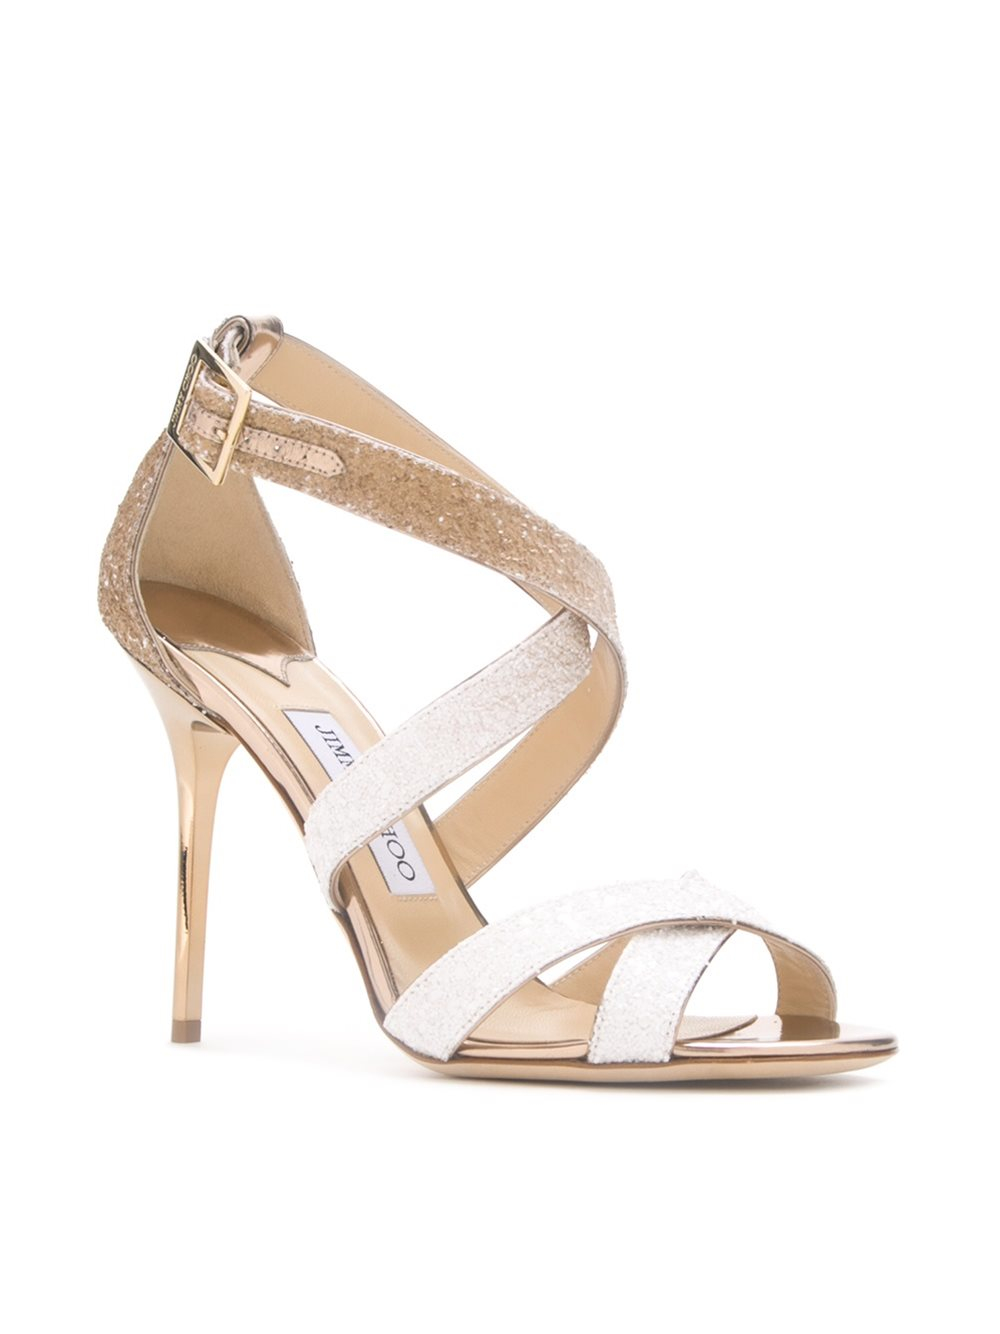 Lyst Jimmy Choo Lottie Leather Sandals In Natural